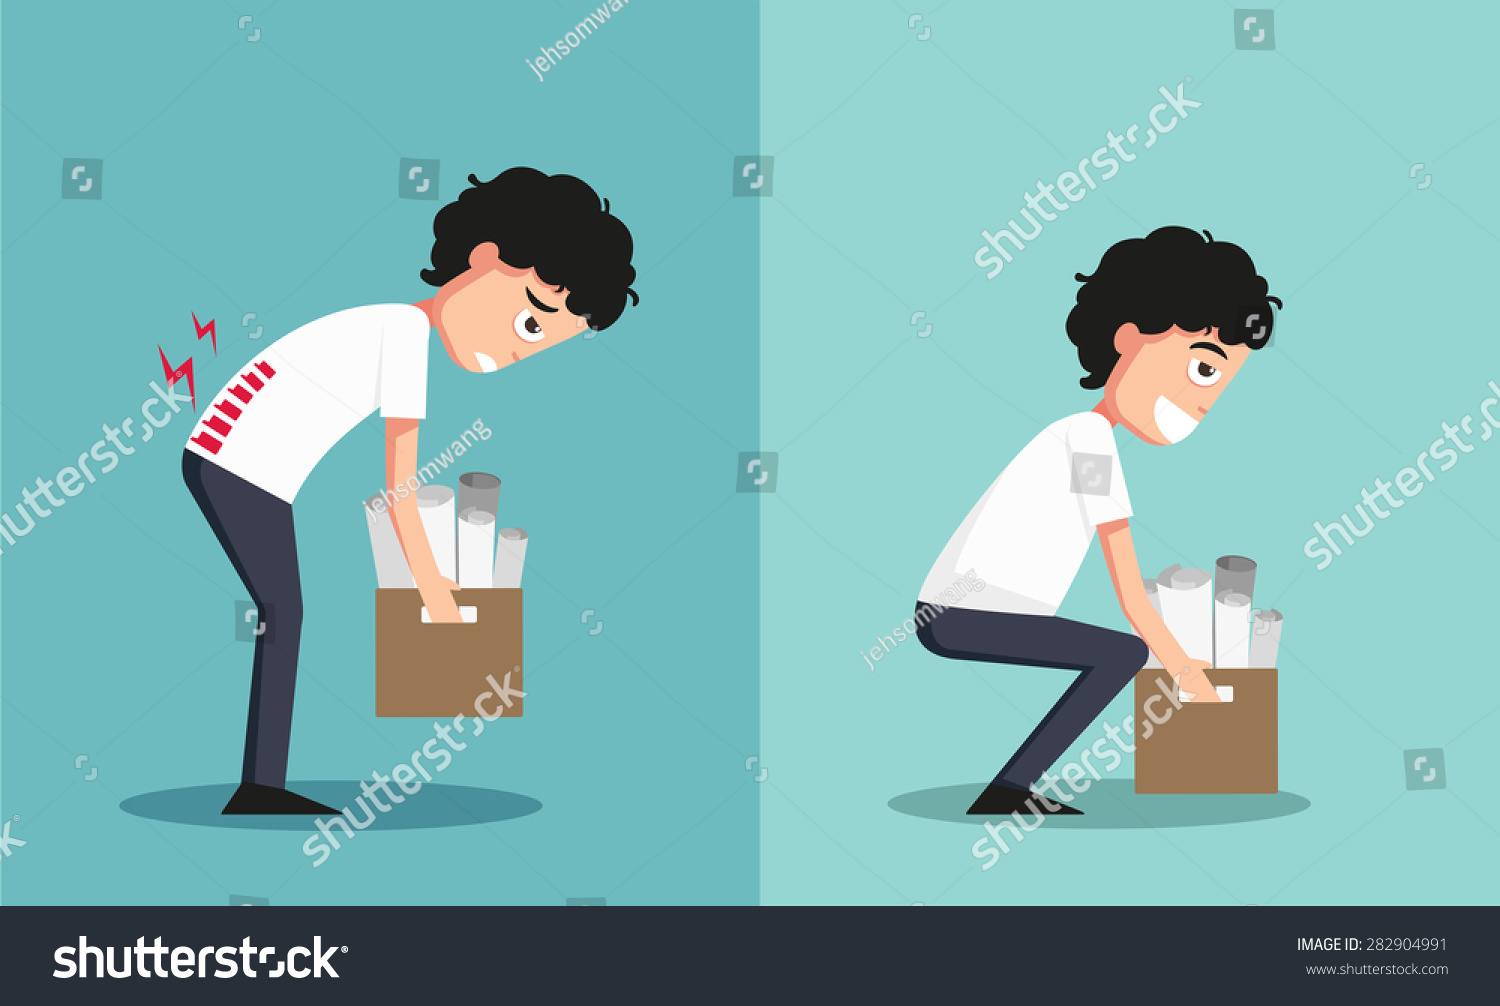 improper versus against proper lifting illustrationvector stock